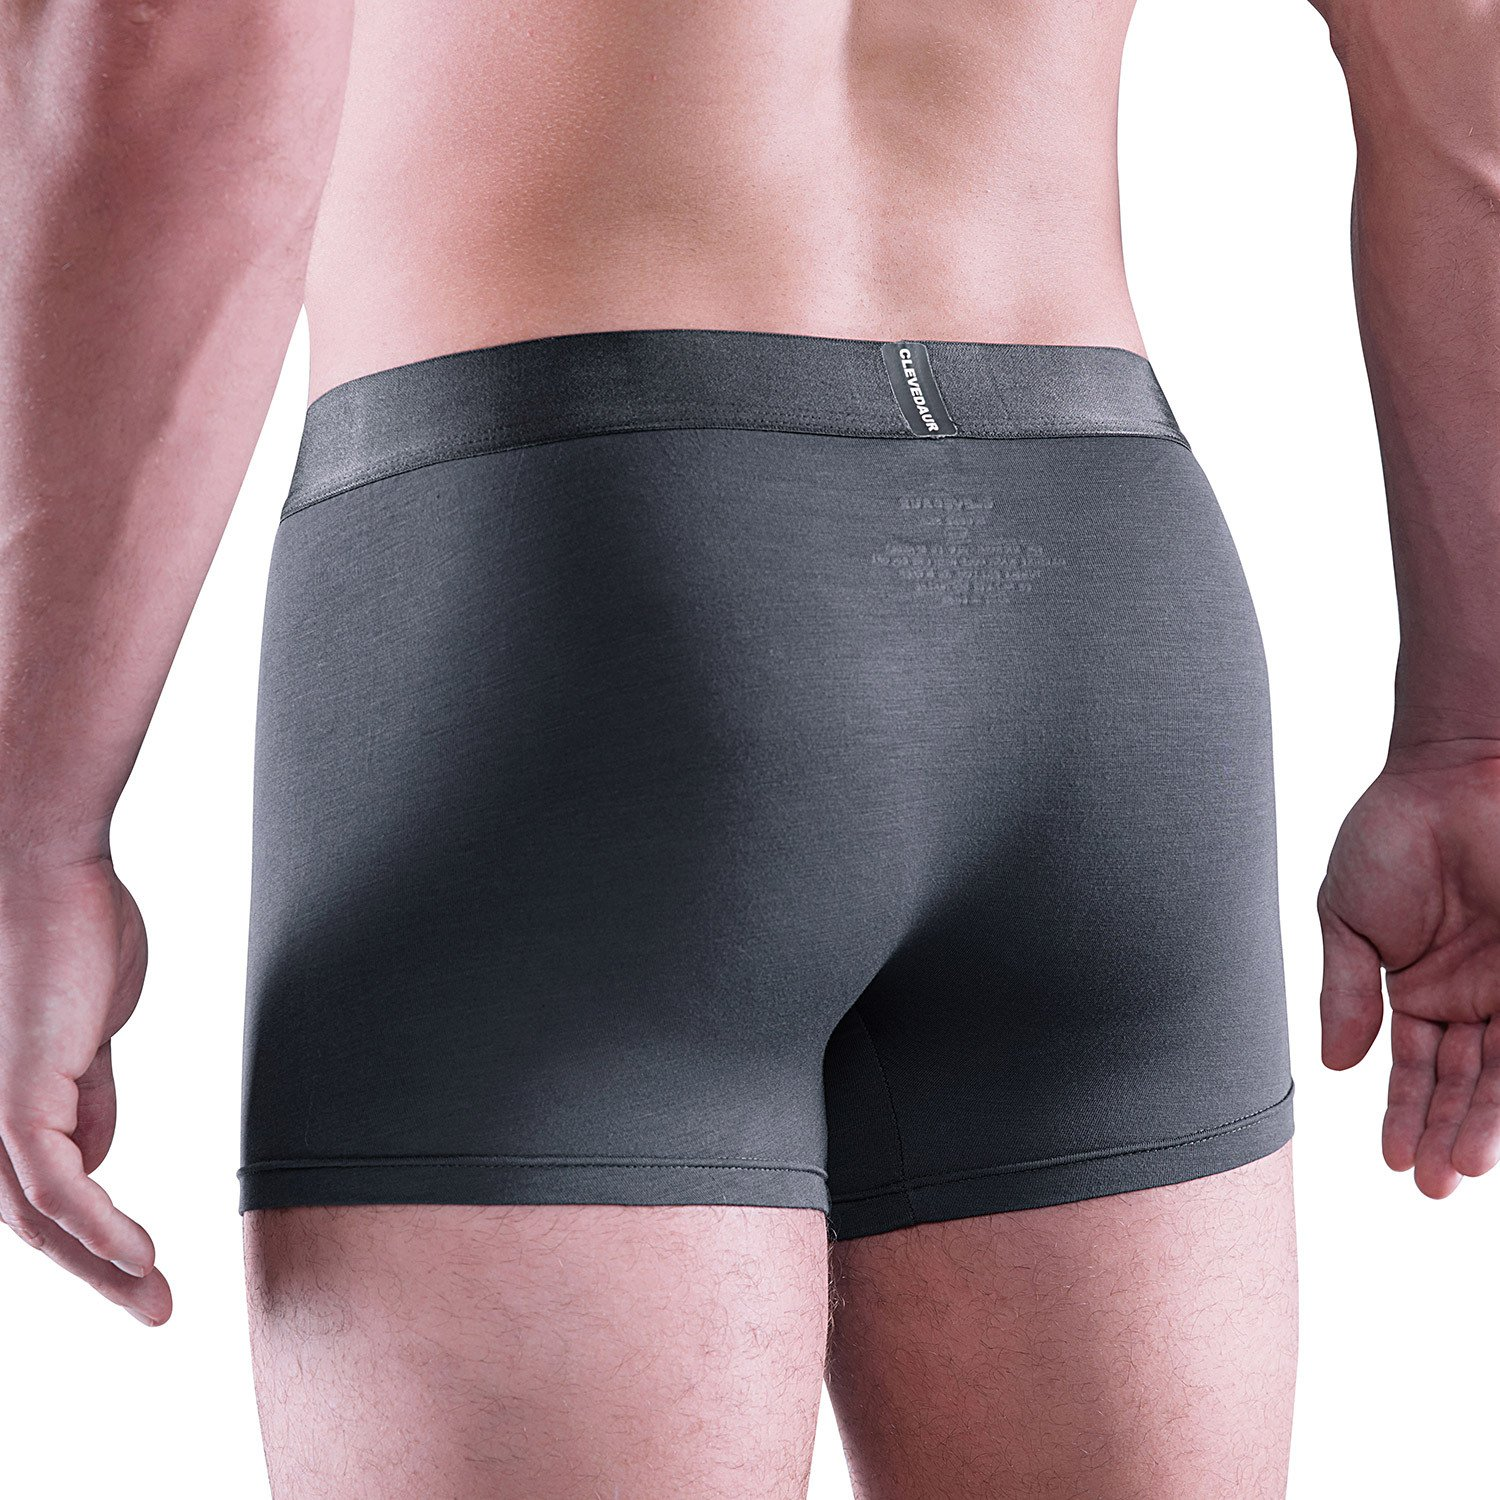 CLEVEDAUR Mens Underwear 4 Inches Antimicrobial Mirco Modal Trunks Pack of 3